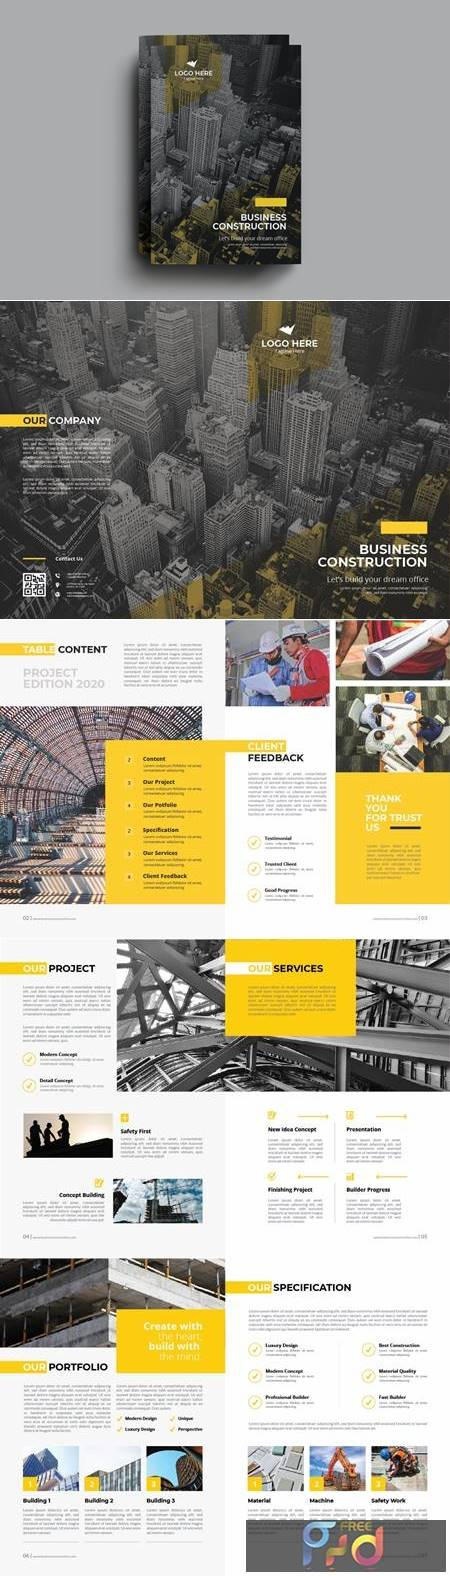 Construction Brochure 8C9LD75 1